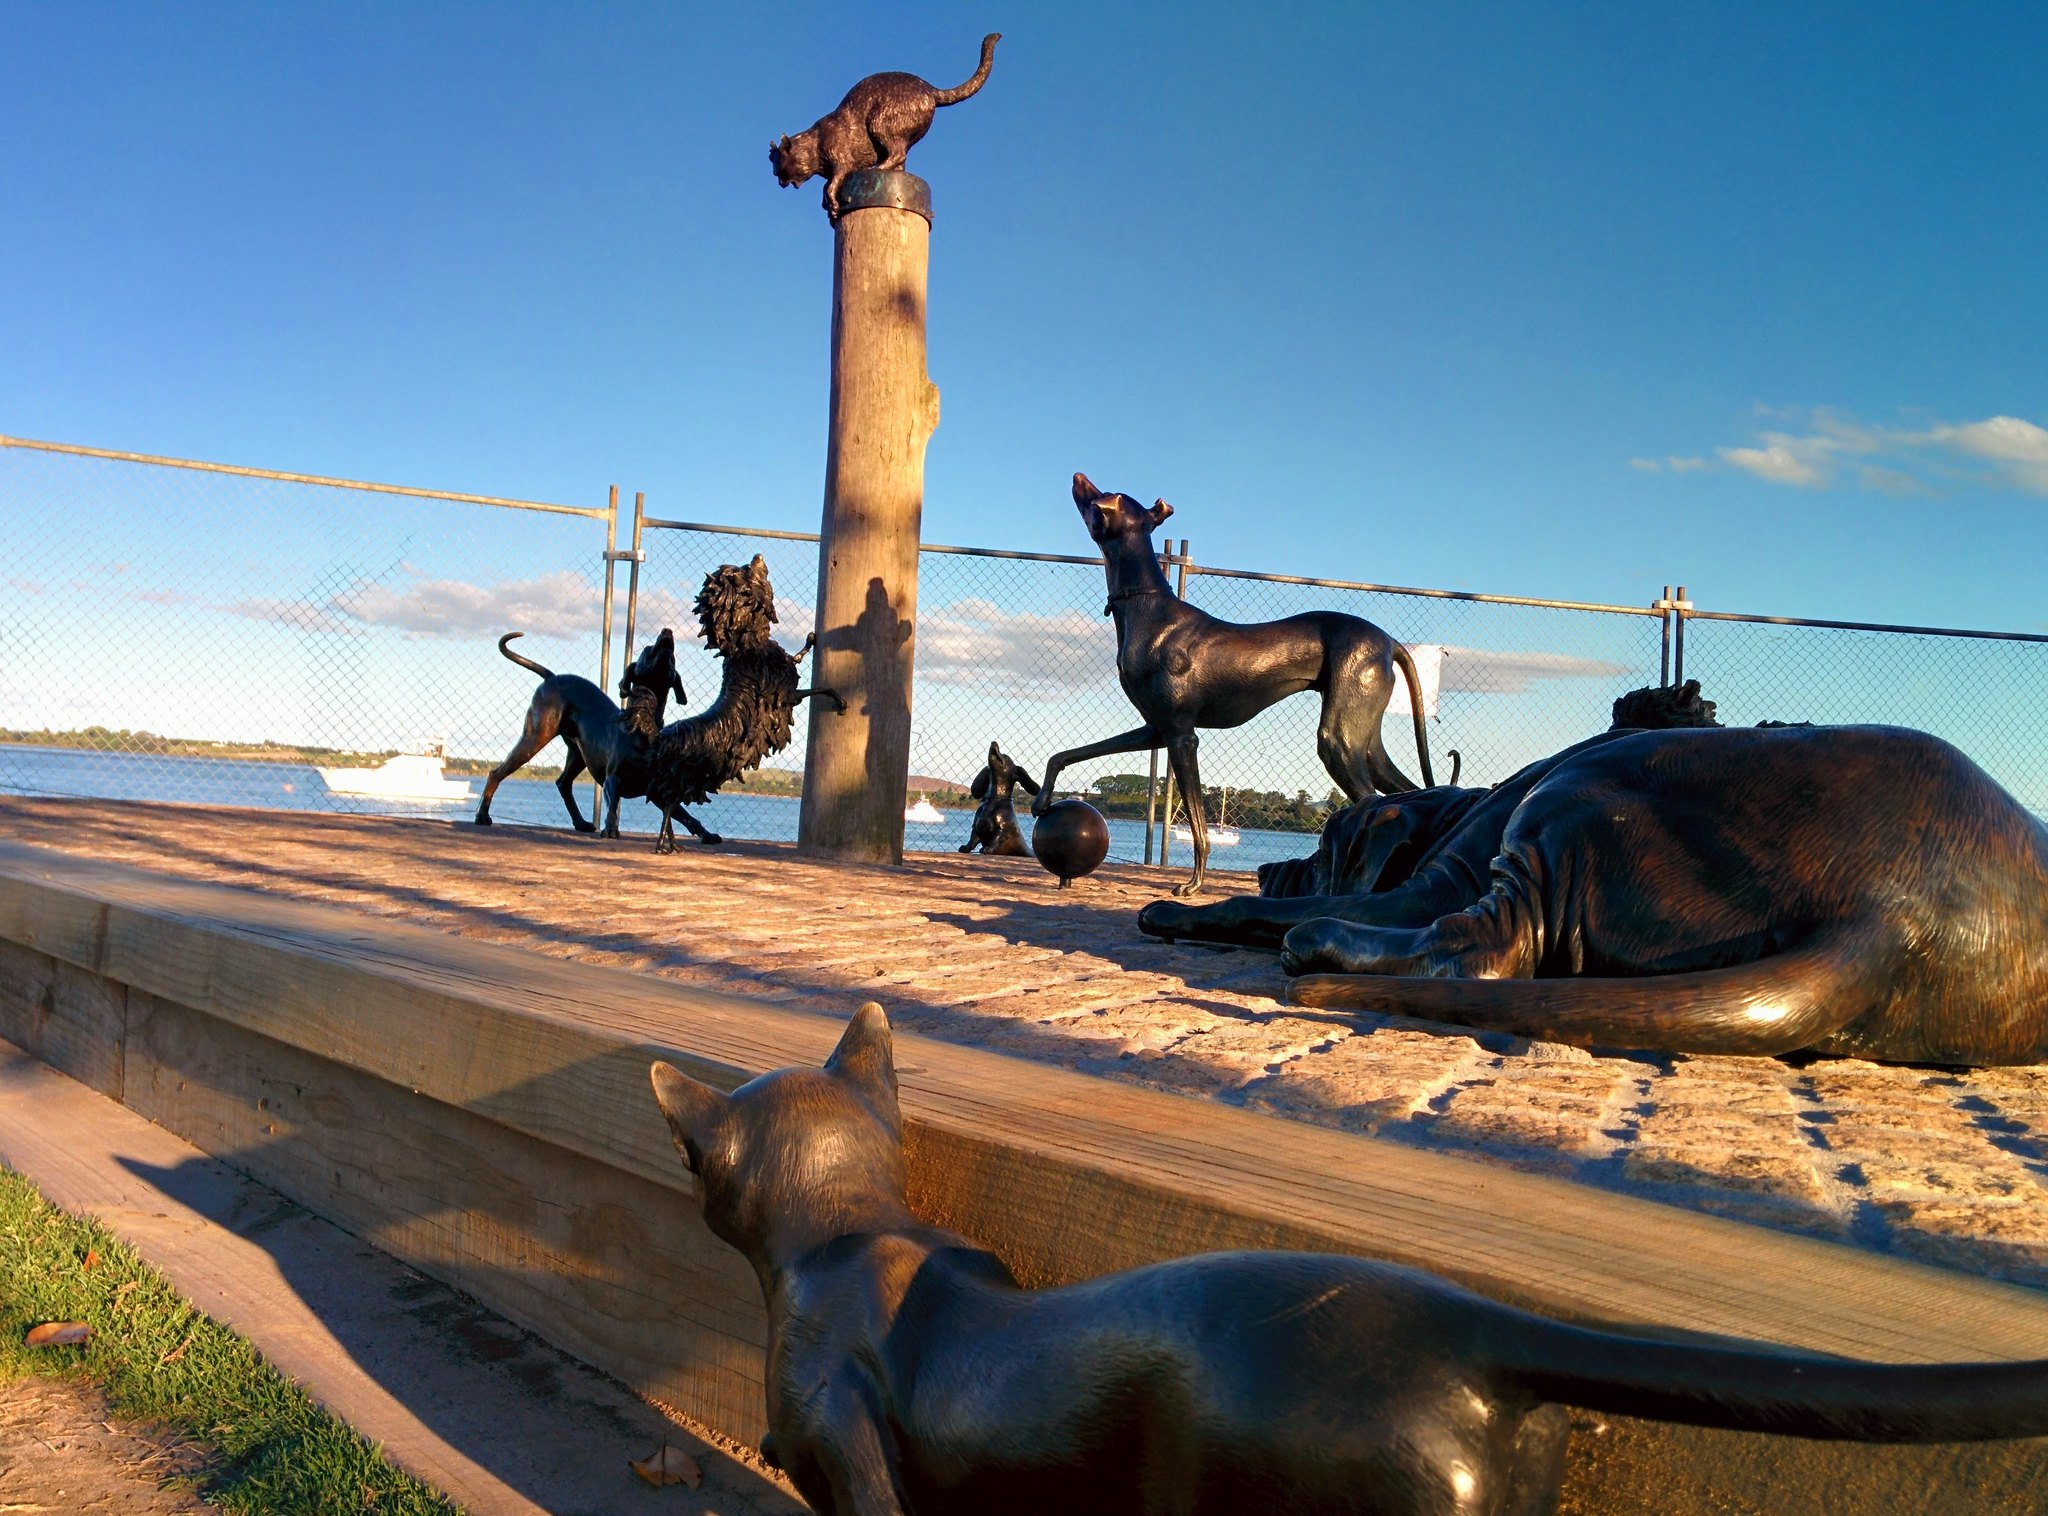 A sculpture on the Tauranga waterfront